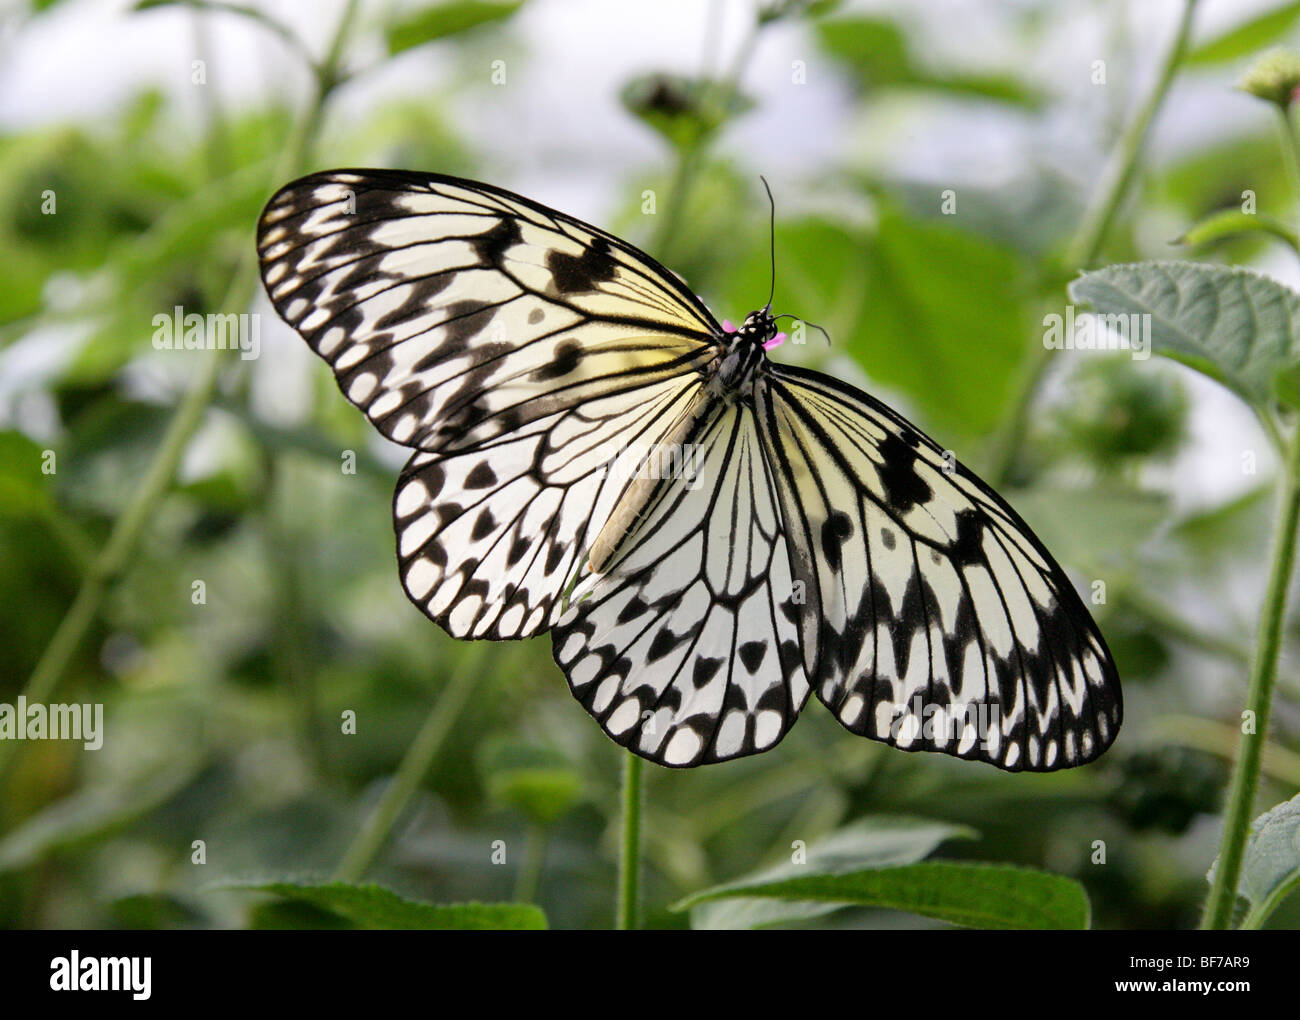 White Tree Nymph Idea leuconoe also Known as the Paper Kite or the Rice Paper Butterfly - Stock Image